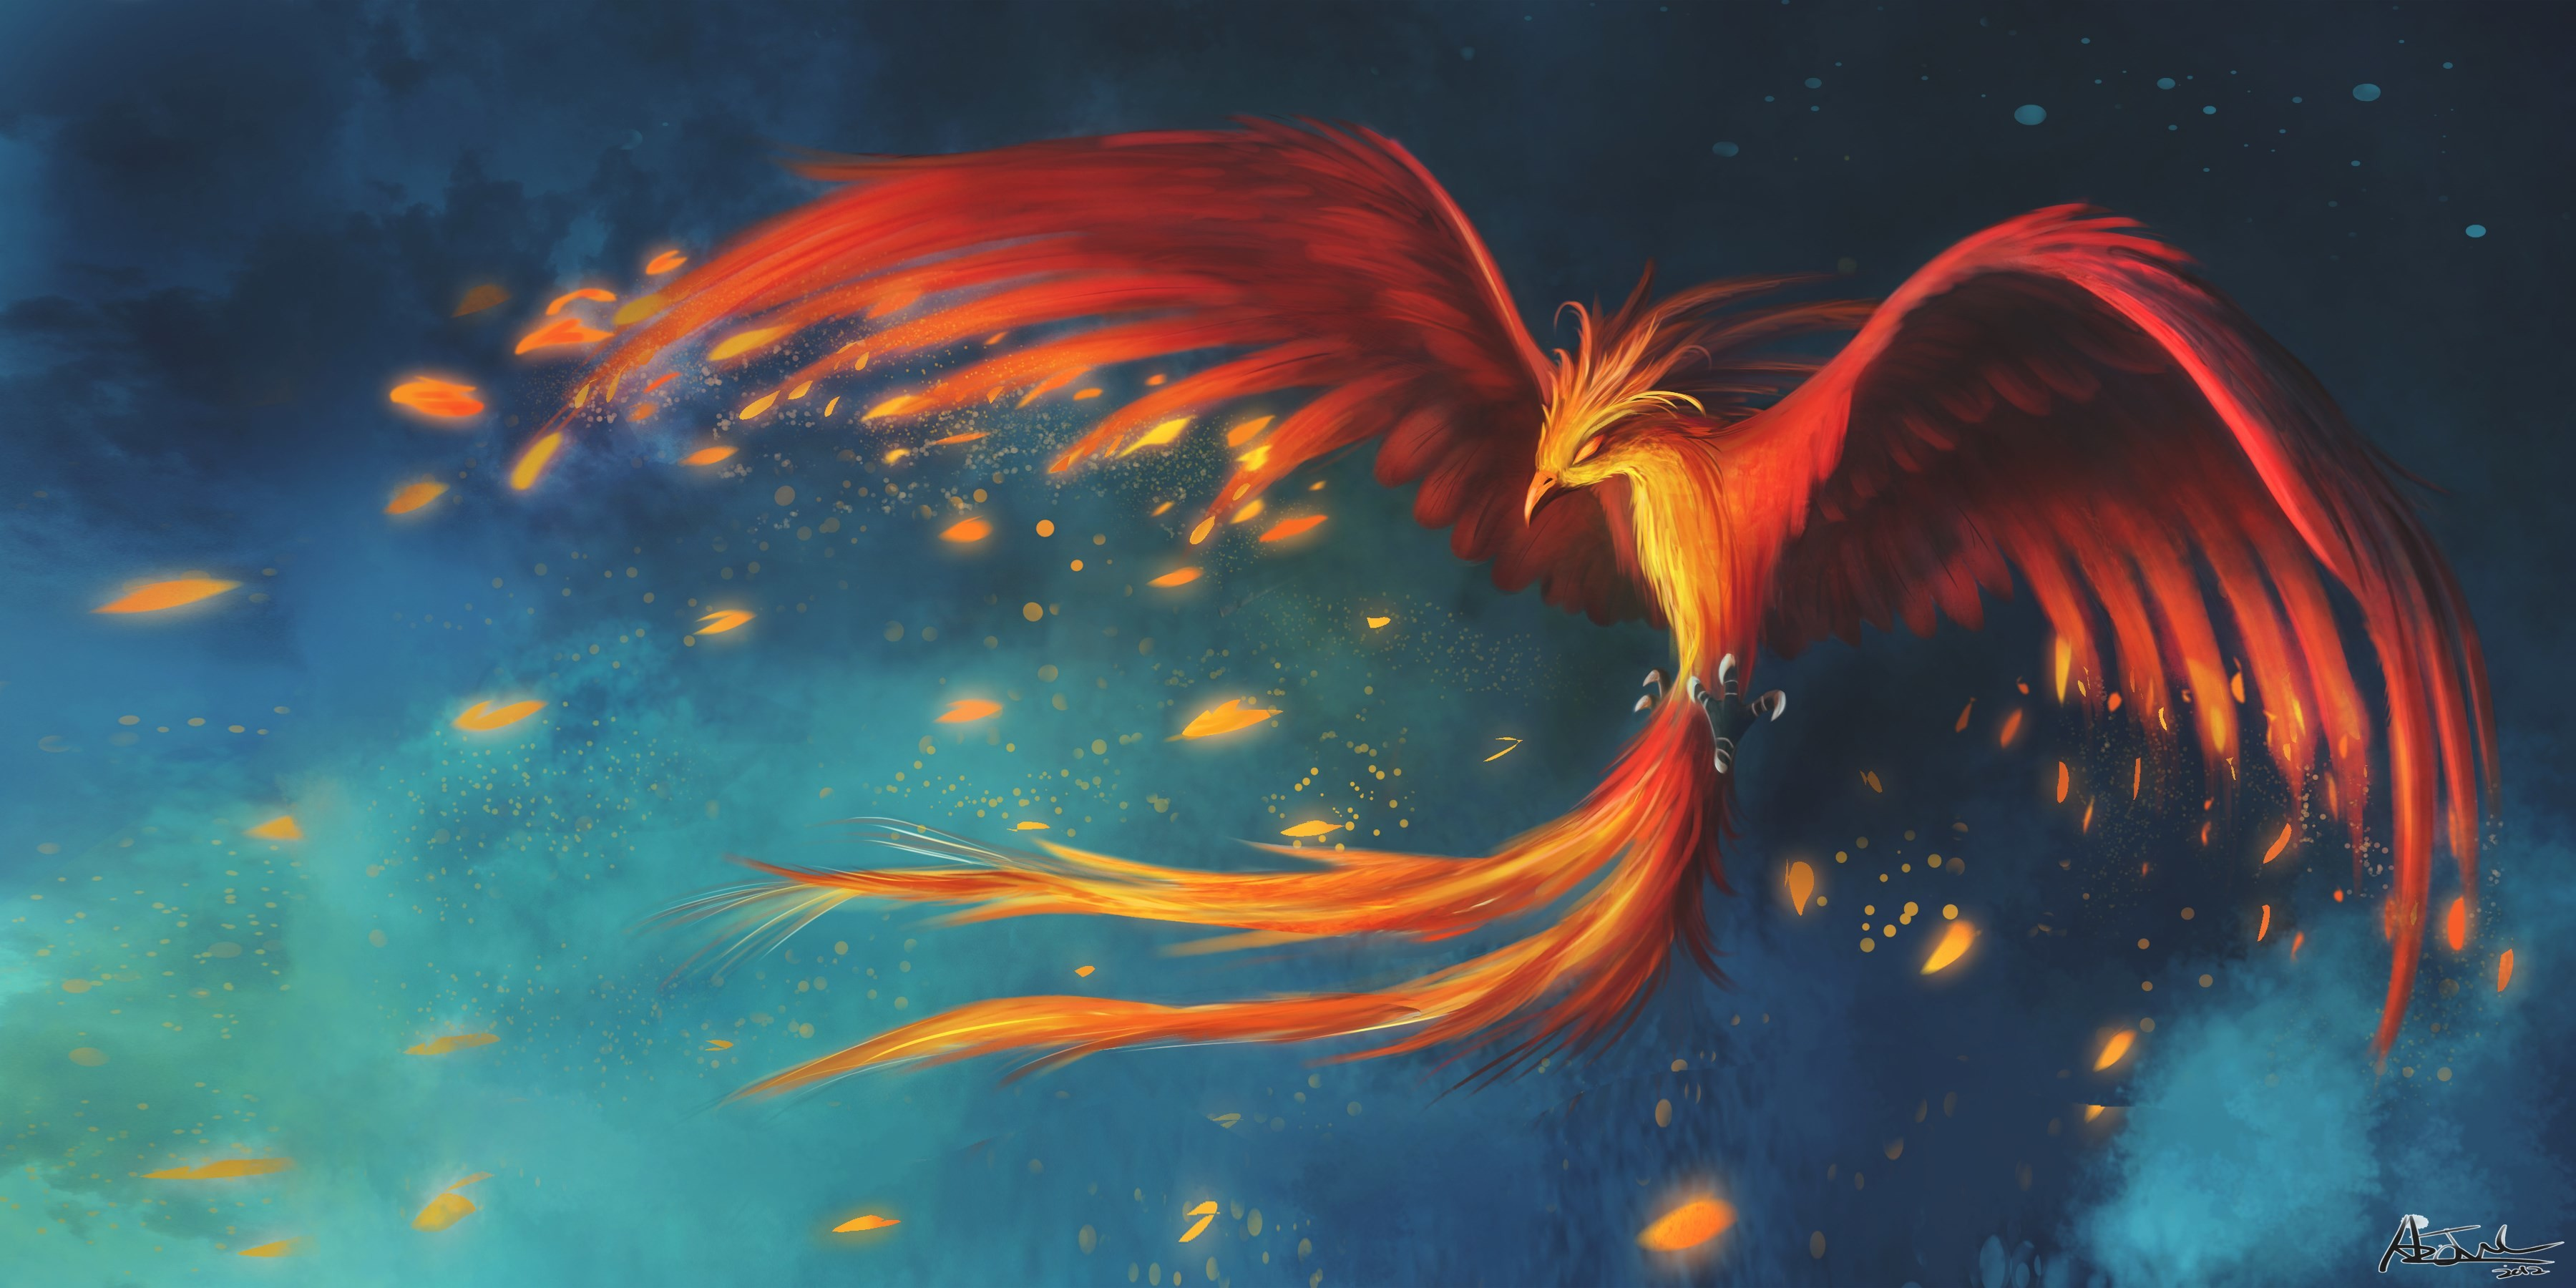 3600x1800  px Backgrounds In High Quality - phoenix backround by Delmon Cook  for : pocketfullofgrace.